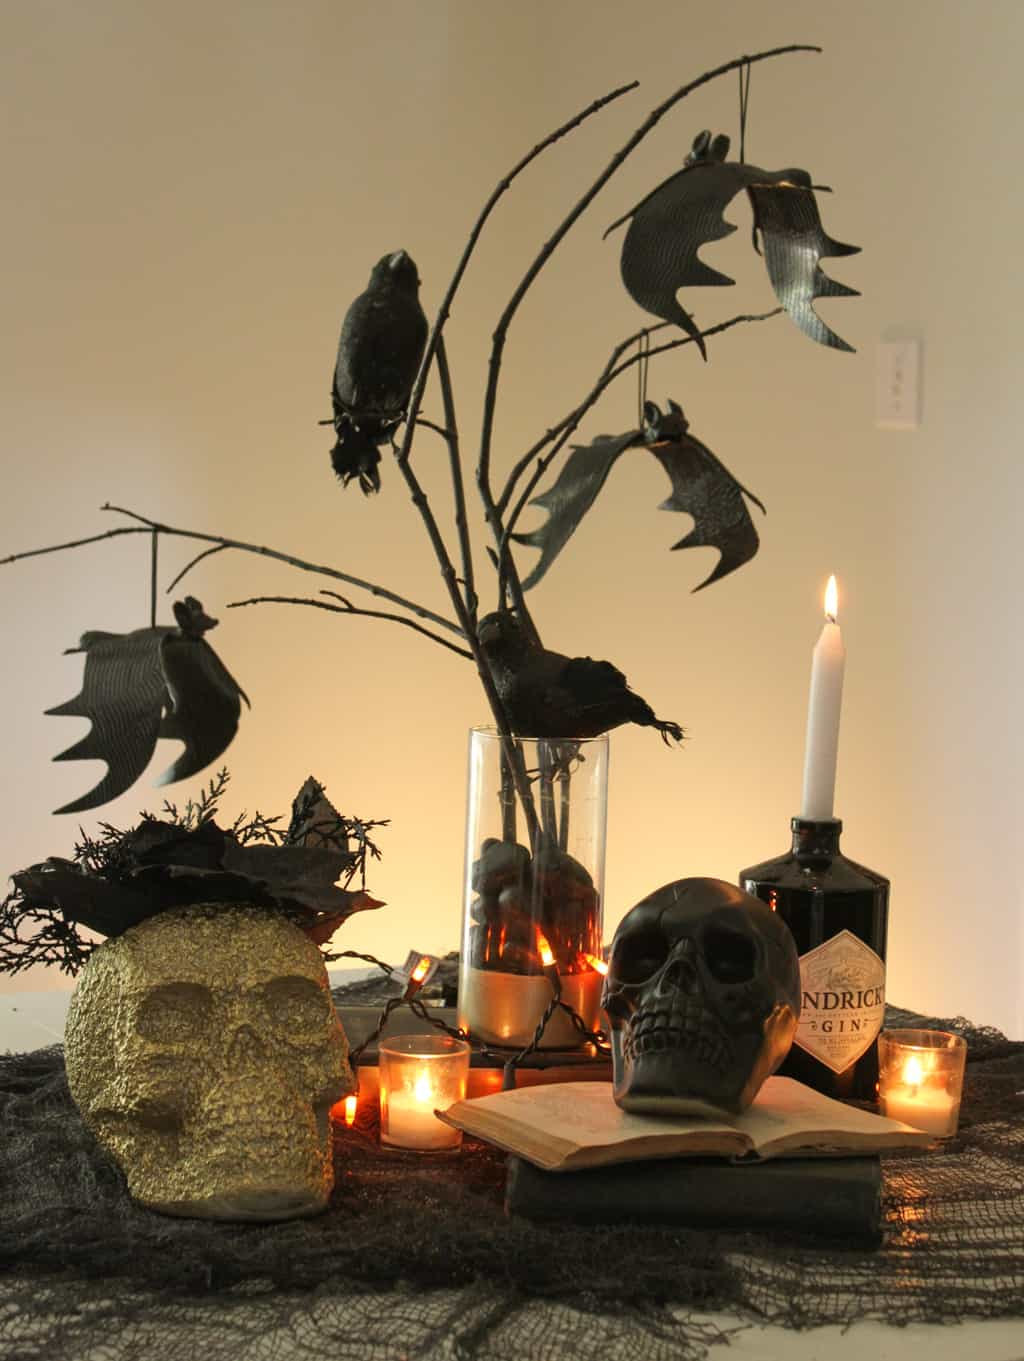 Are you hosting a Halloween party? I'm sharing 3 Last-minute DIY halloween decor ideas that are super easy, fun, and affordable!